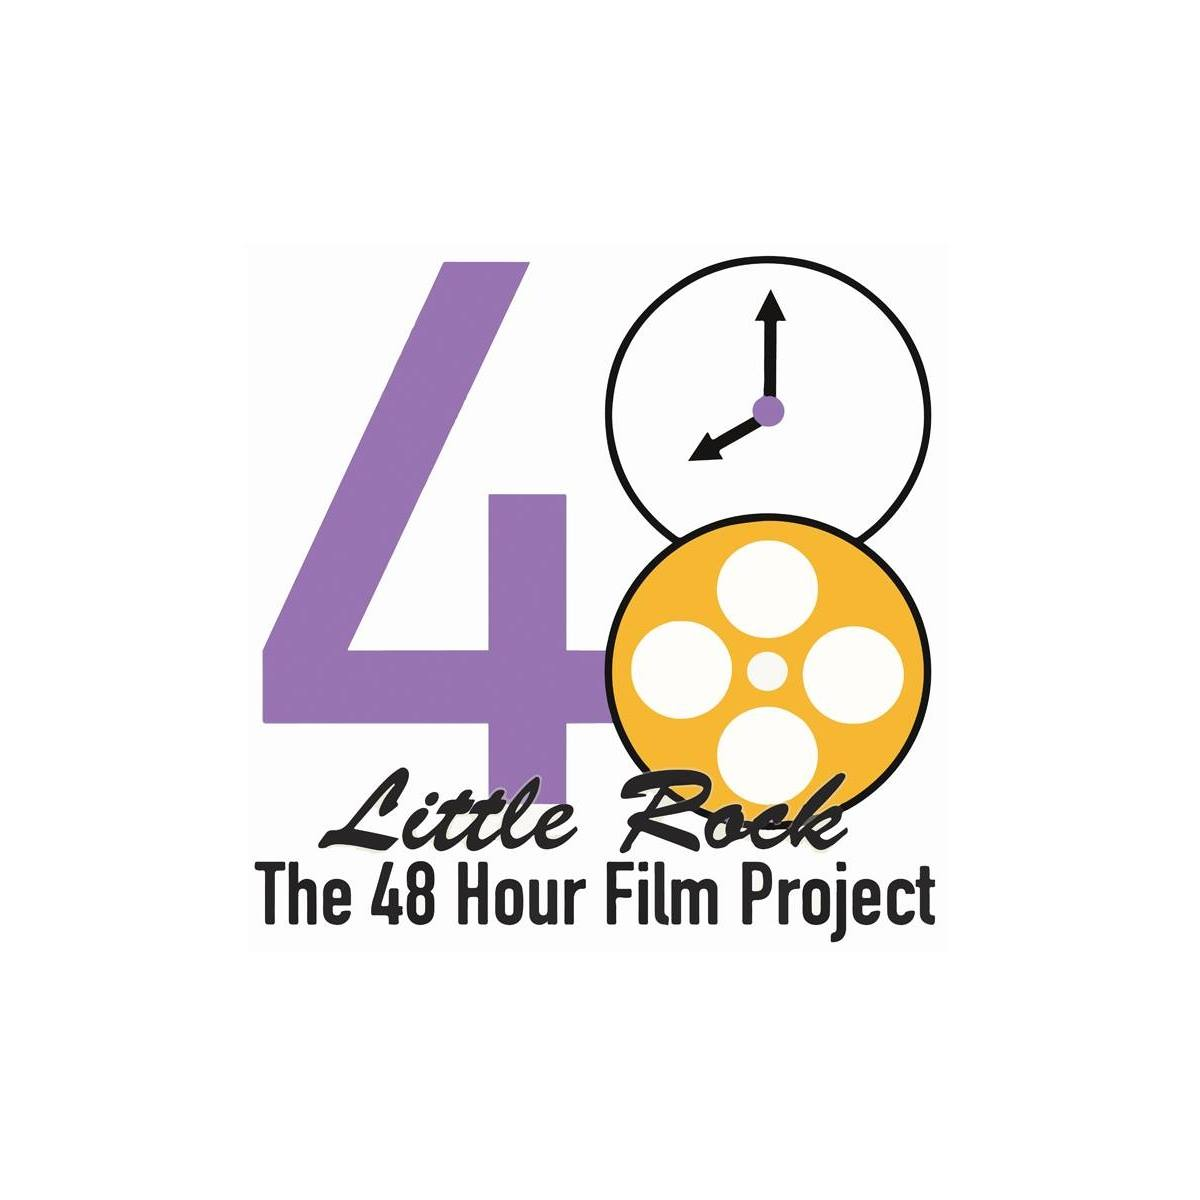 Little Rock 48 Hour Film Project logo